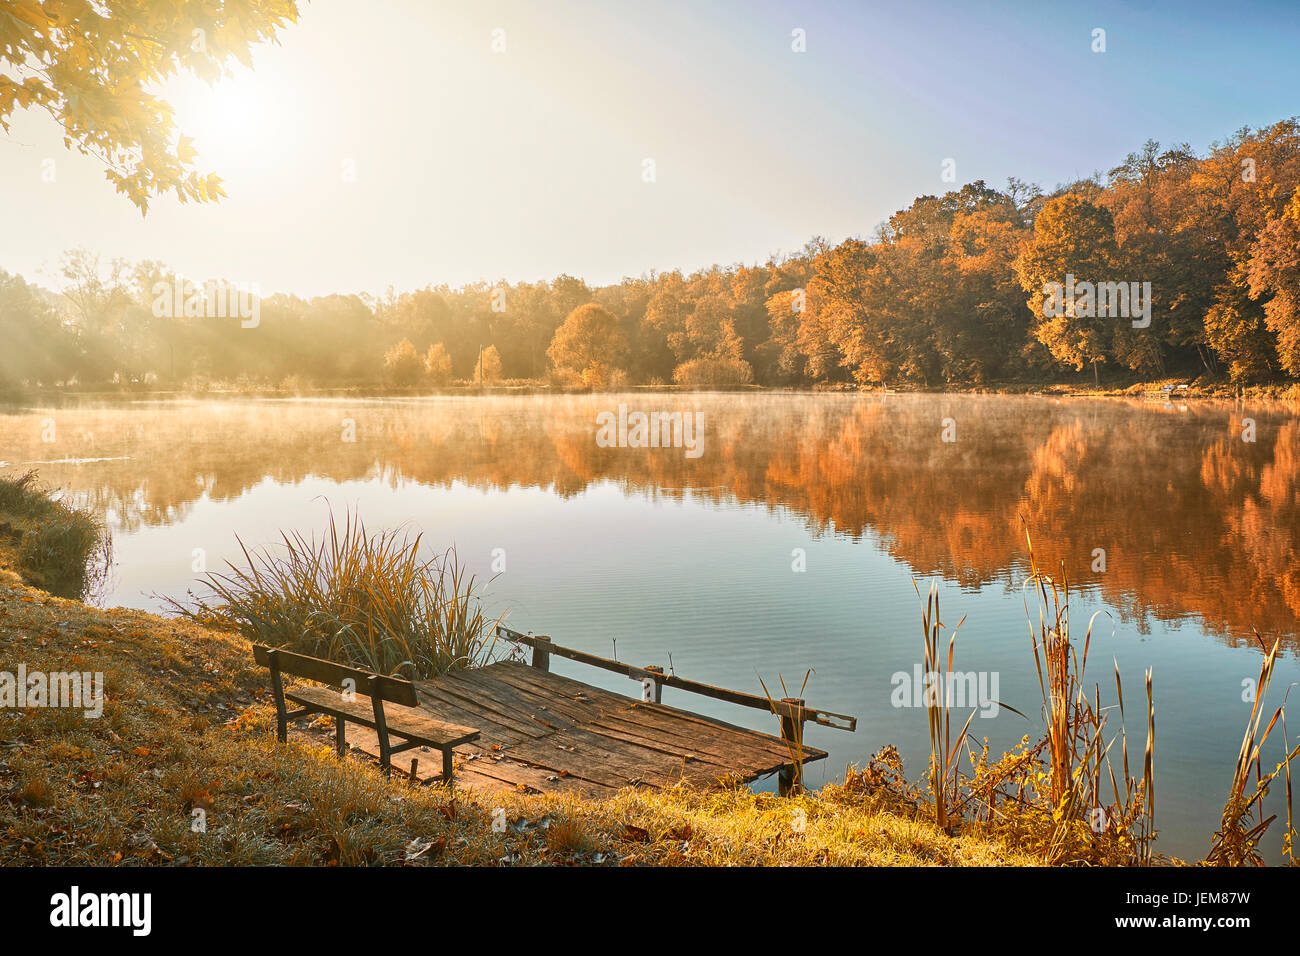 Autumn forest and lake in sunrise - Stock Image